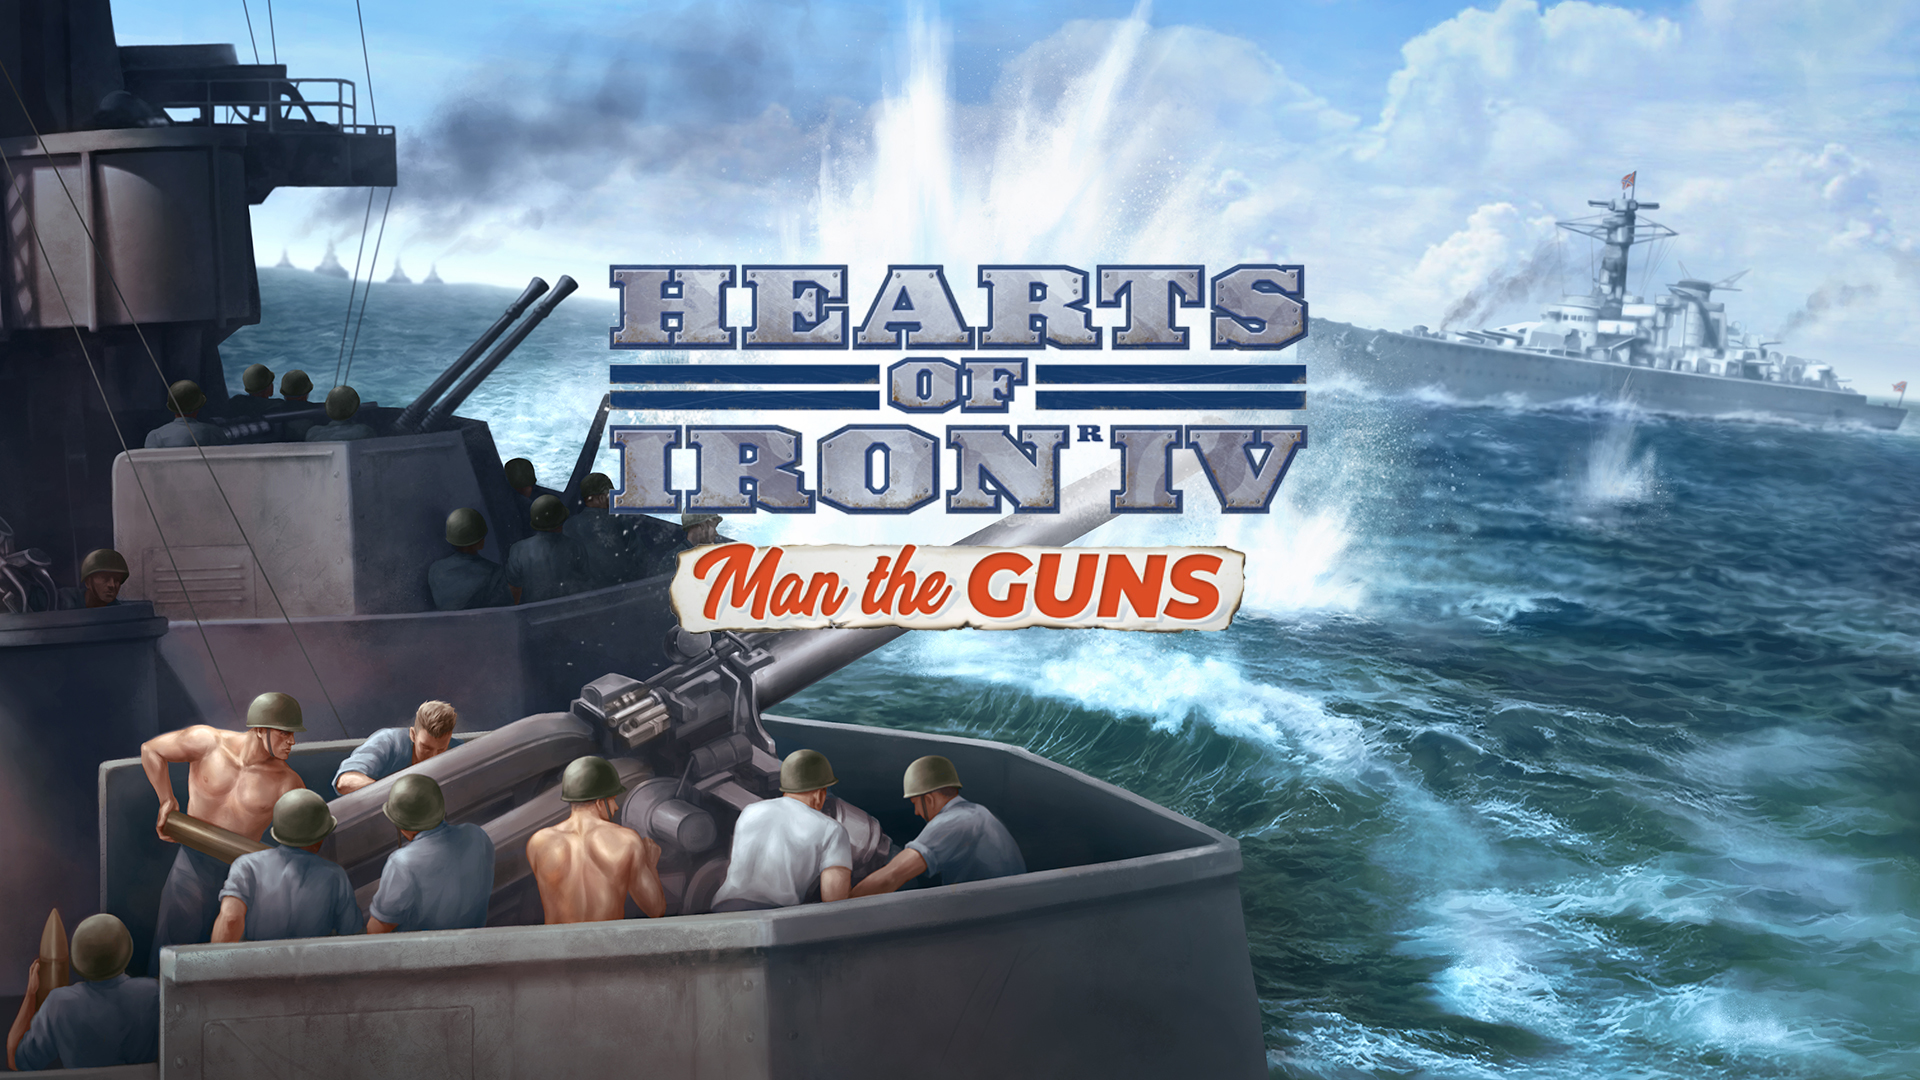 Hearts Of Iron Iv Man The Guns Dlc Unloads February 28 Expansive